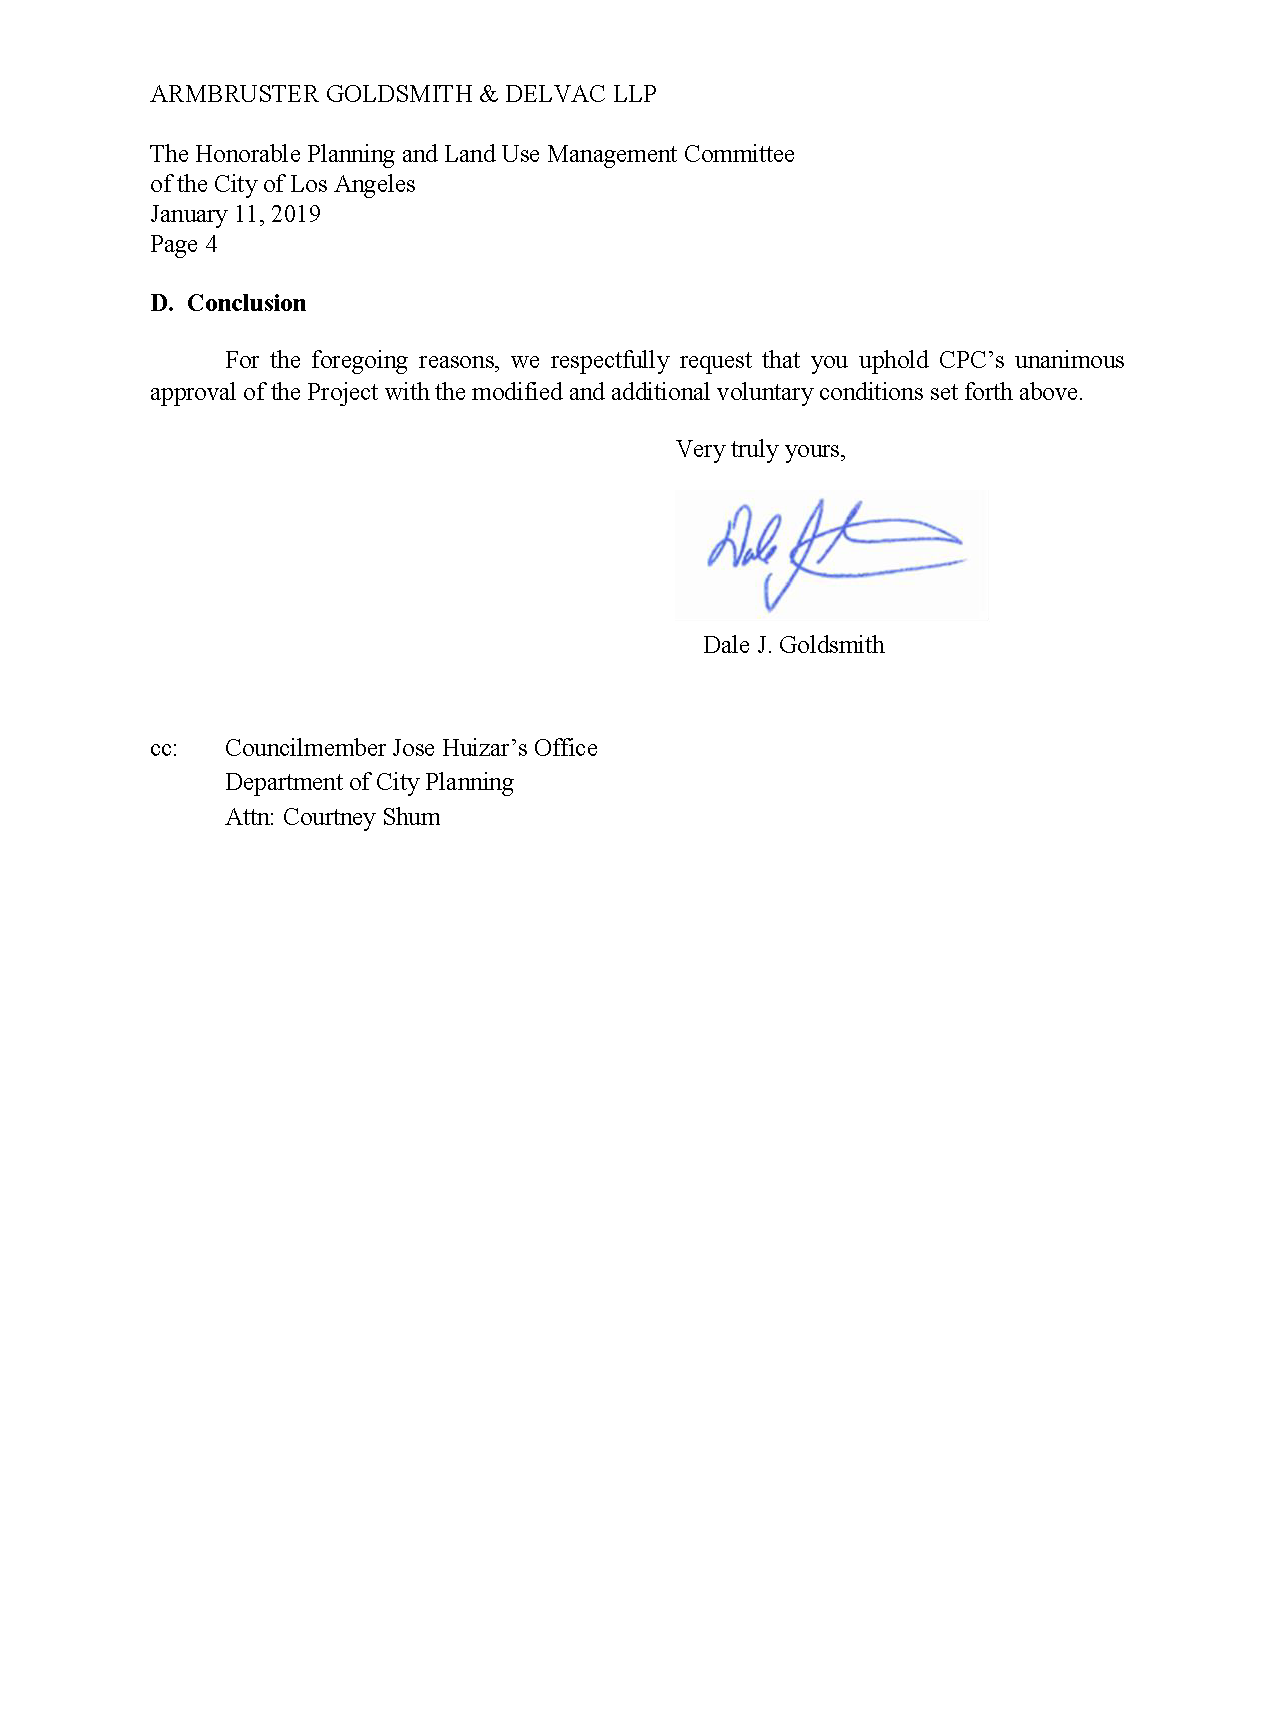 ACC- CF 18-1035- (1-15-19 PLUM Committee Mtg.)_Page_4.png